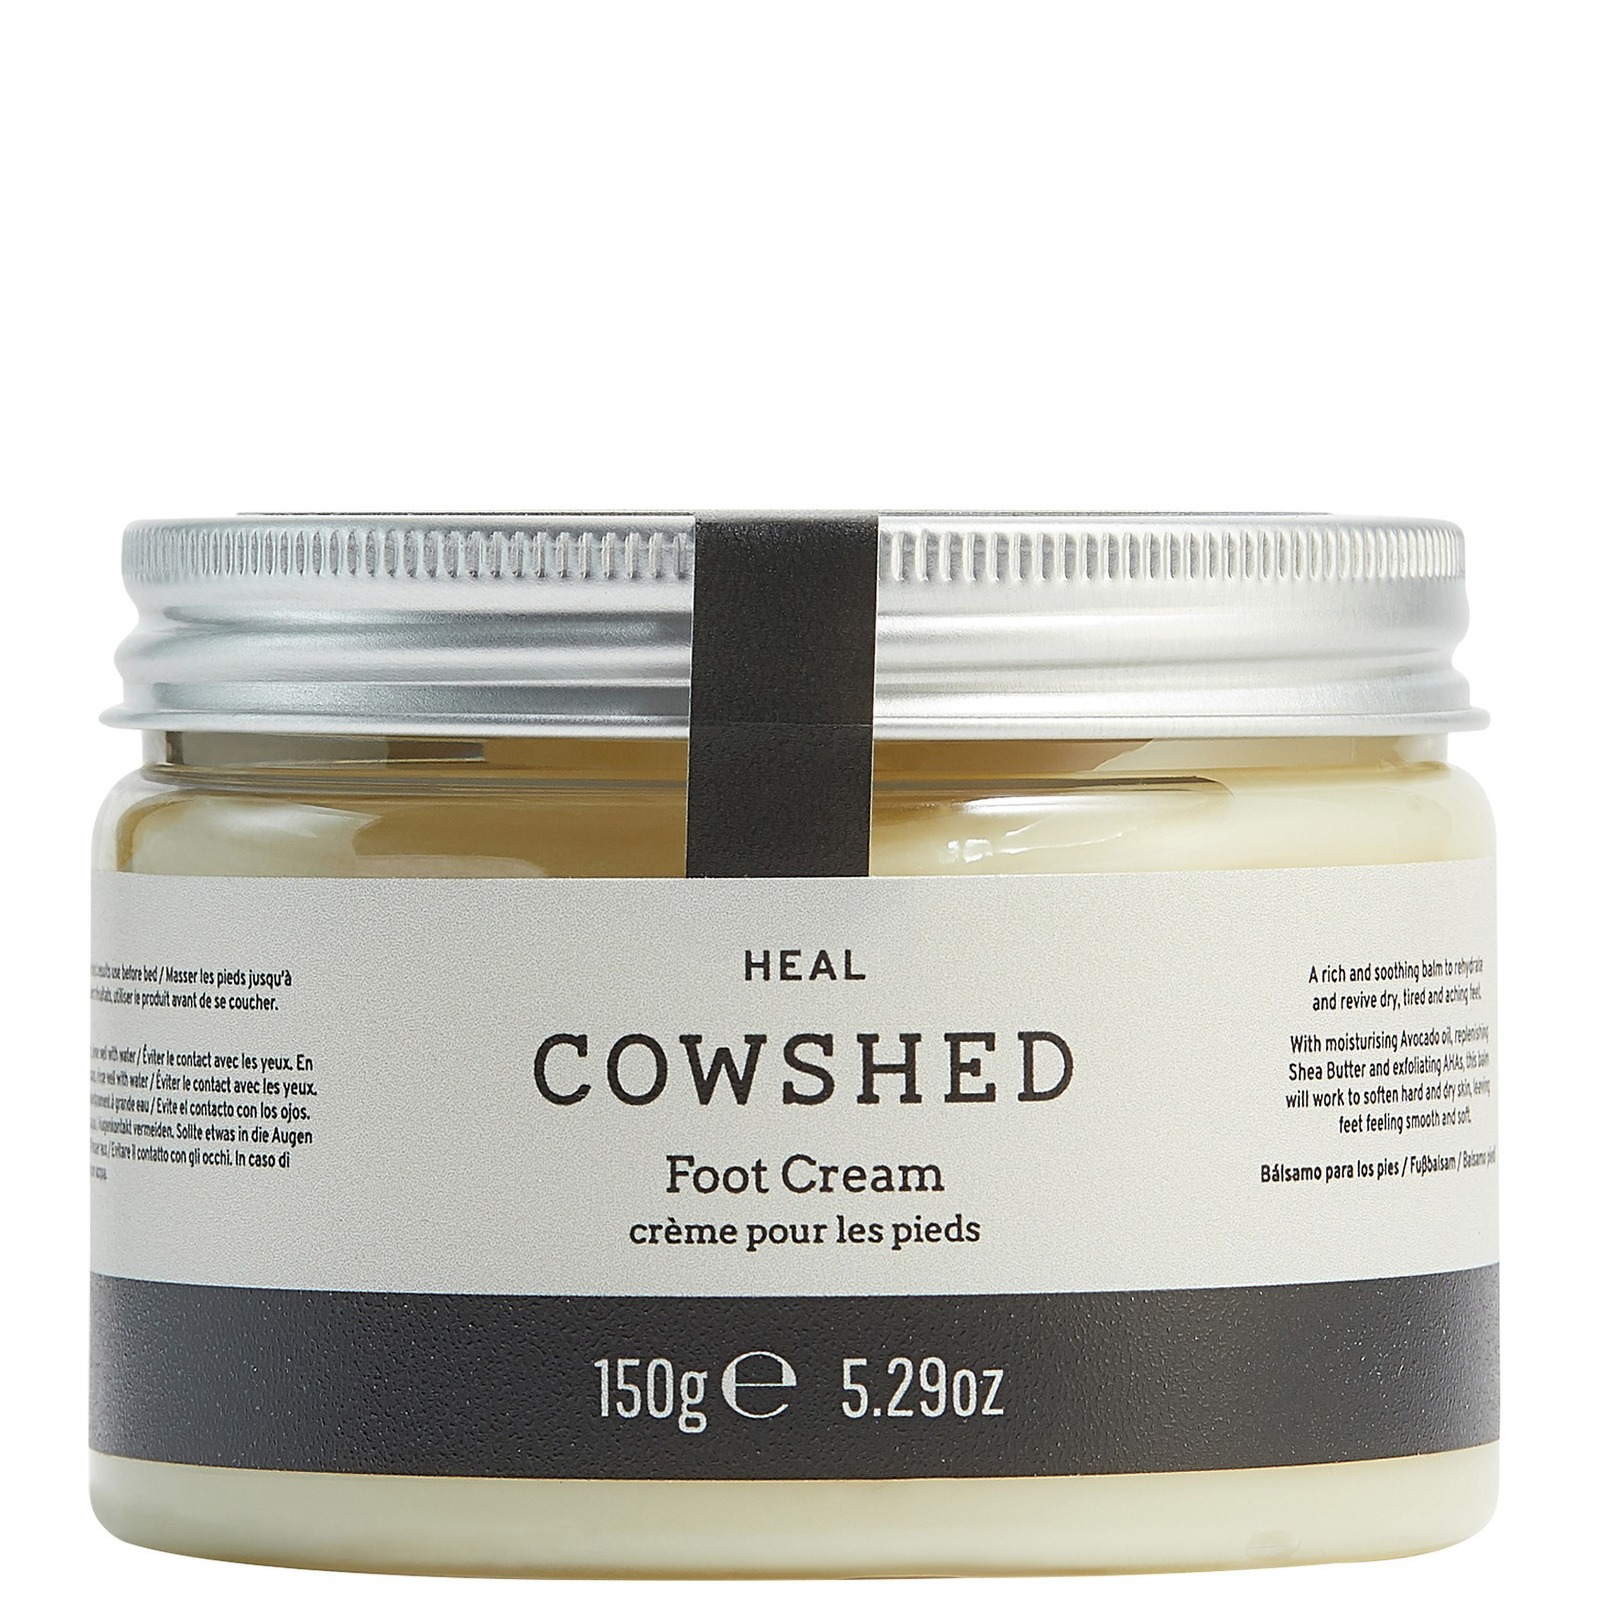 Cowshed Body Heal Foot Cream 150g